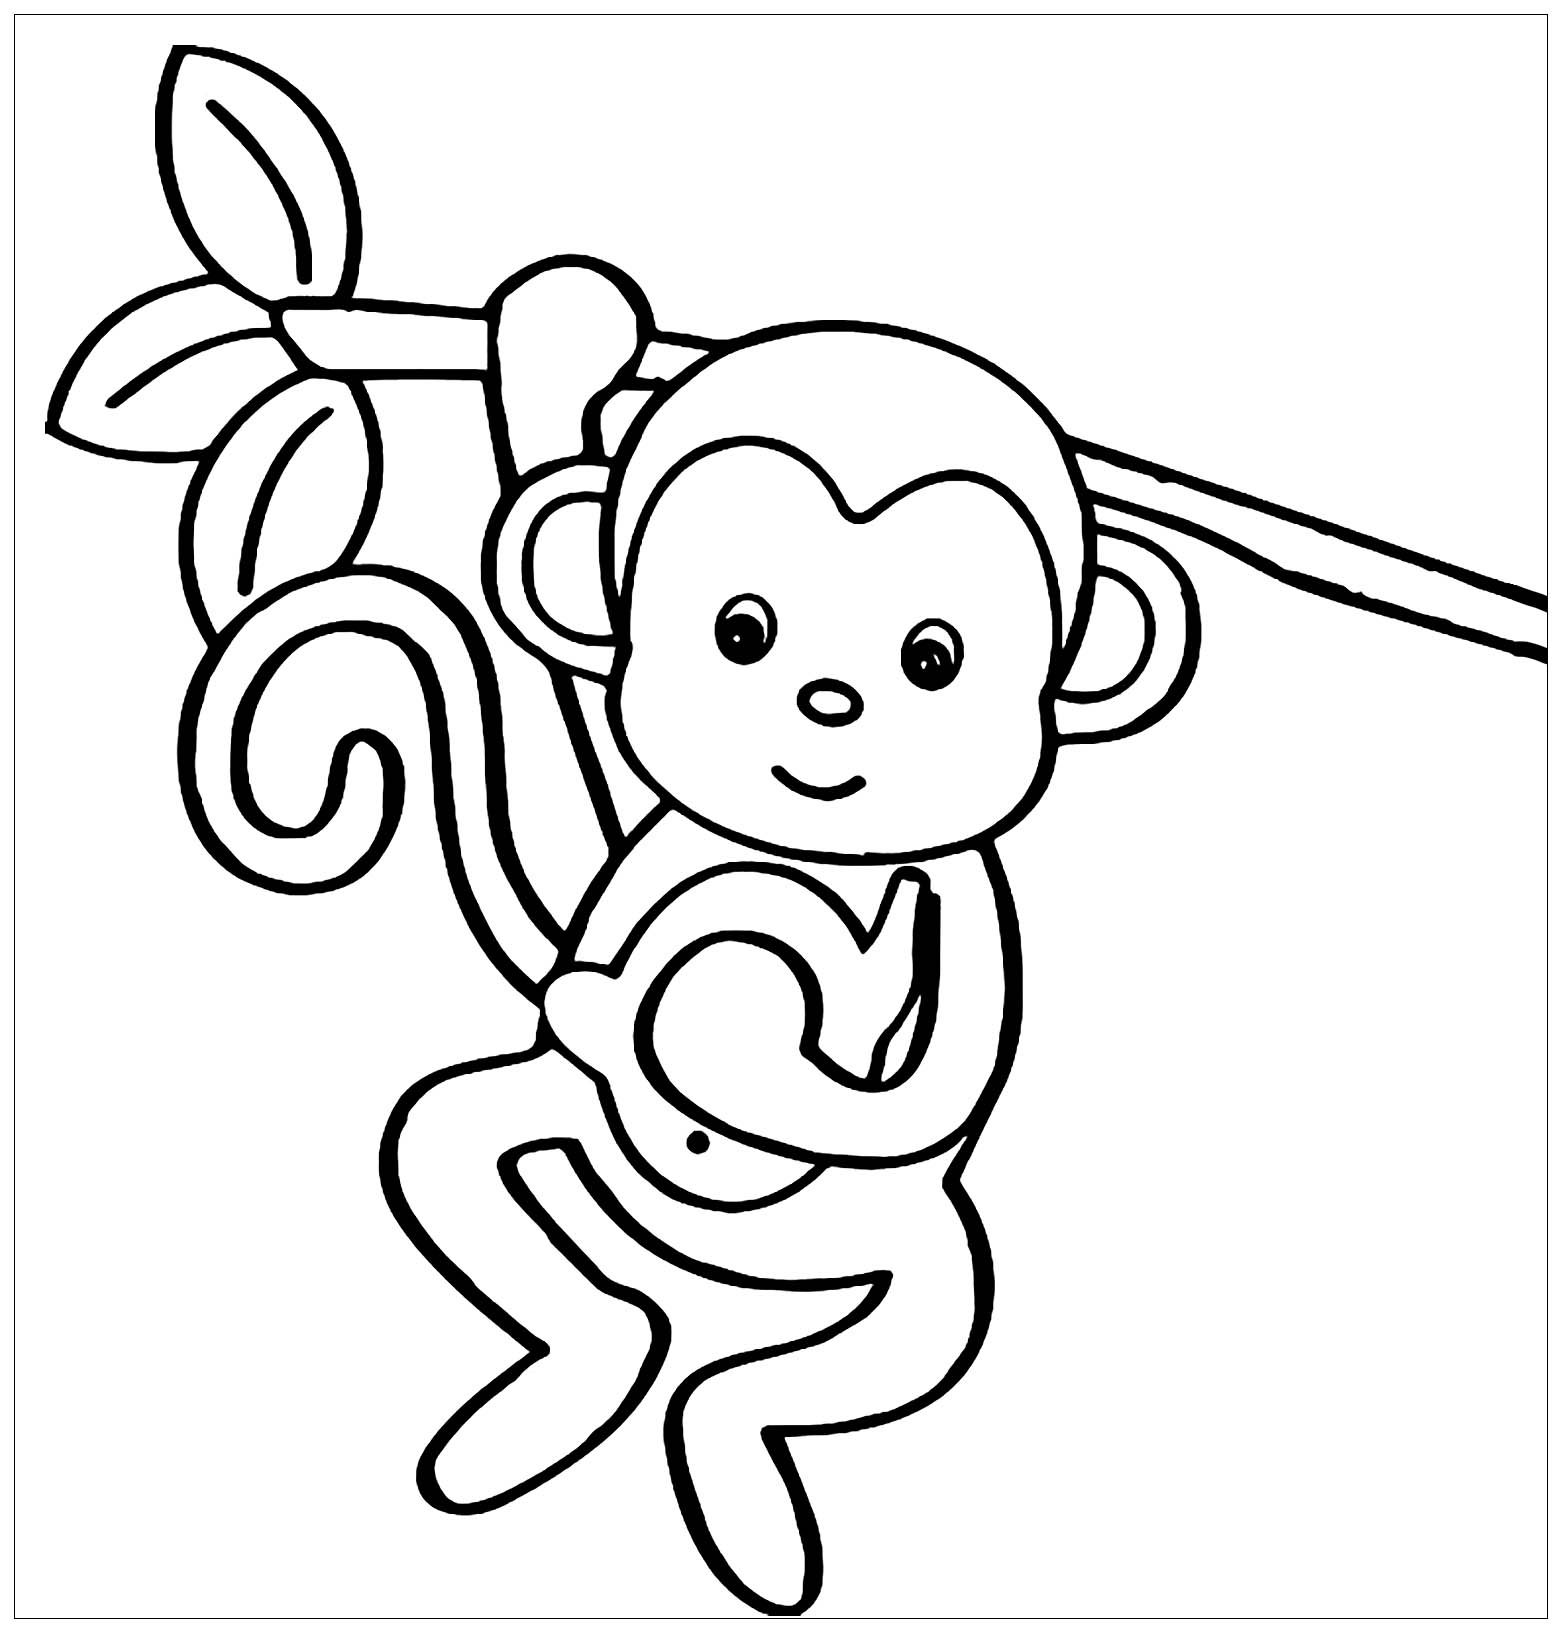 monkey coloring pictures coloring pages of monkeys printable activity shelter monkey pictures coloring